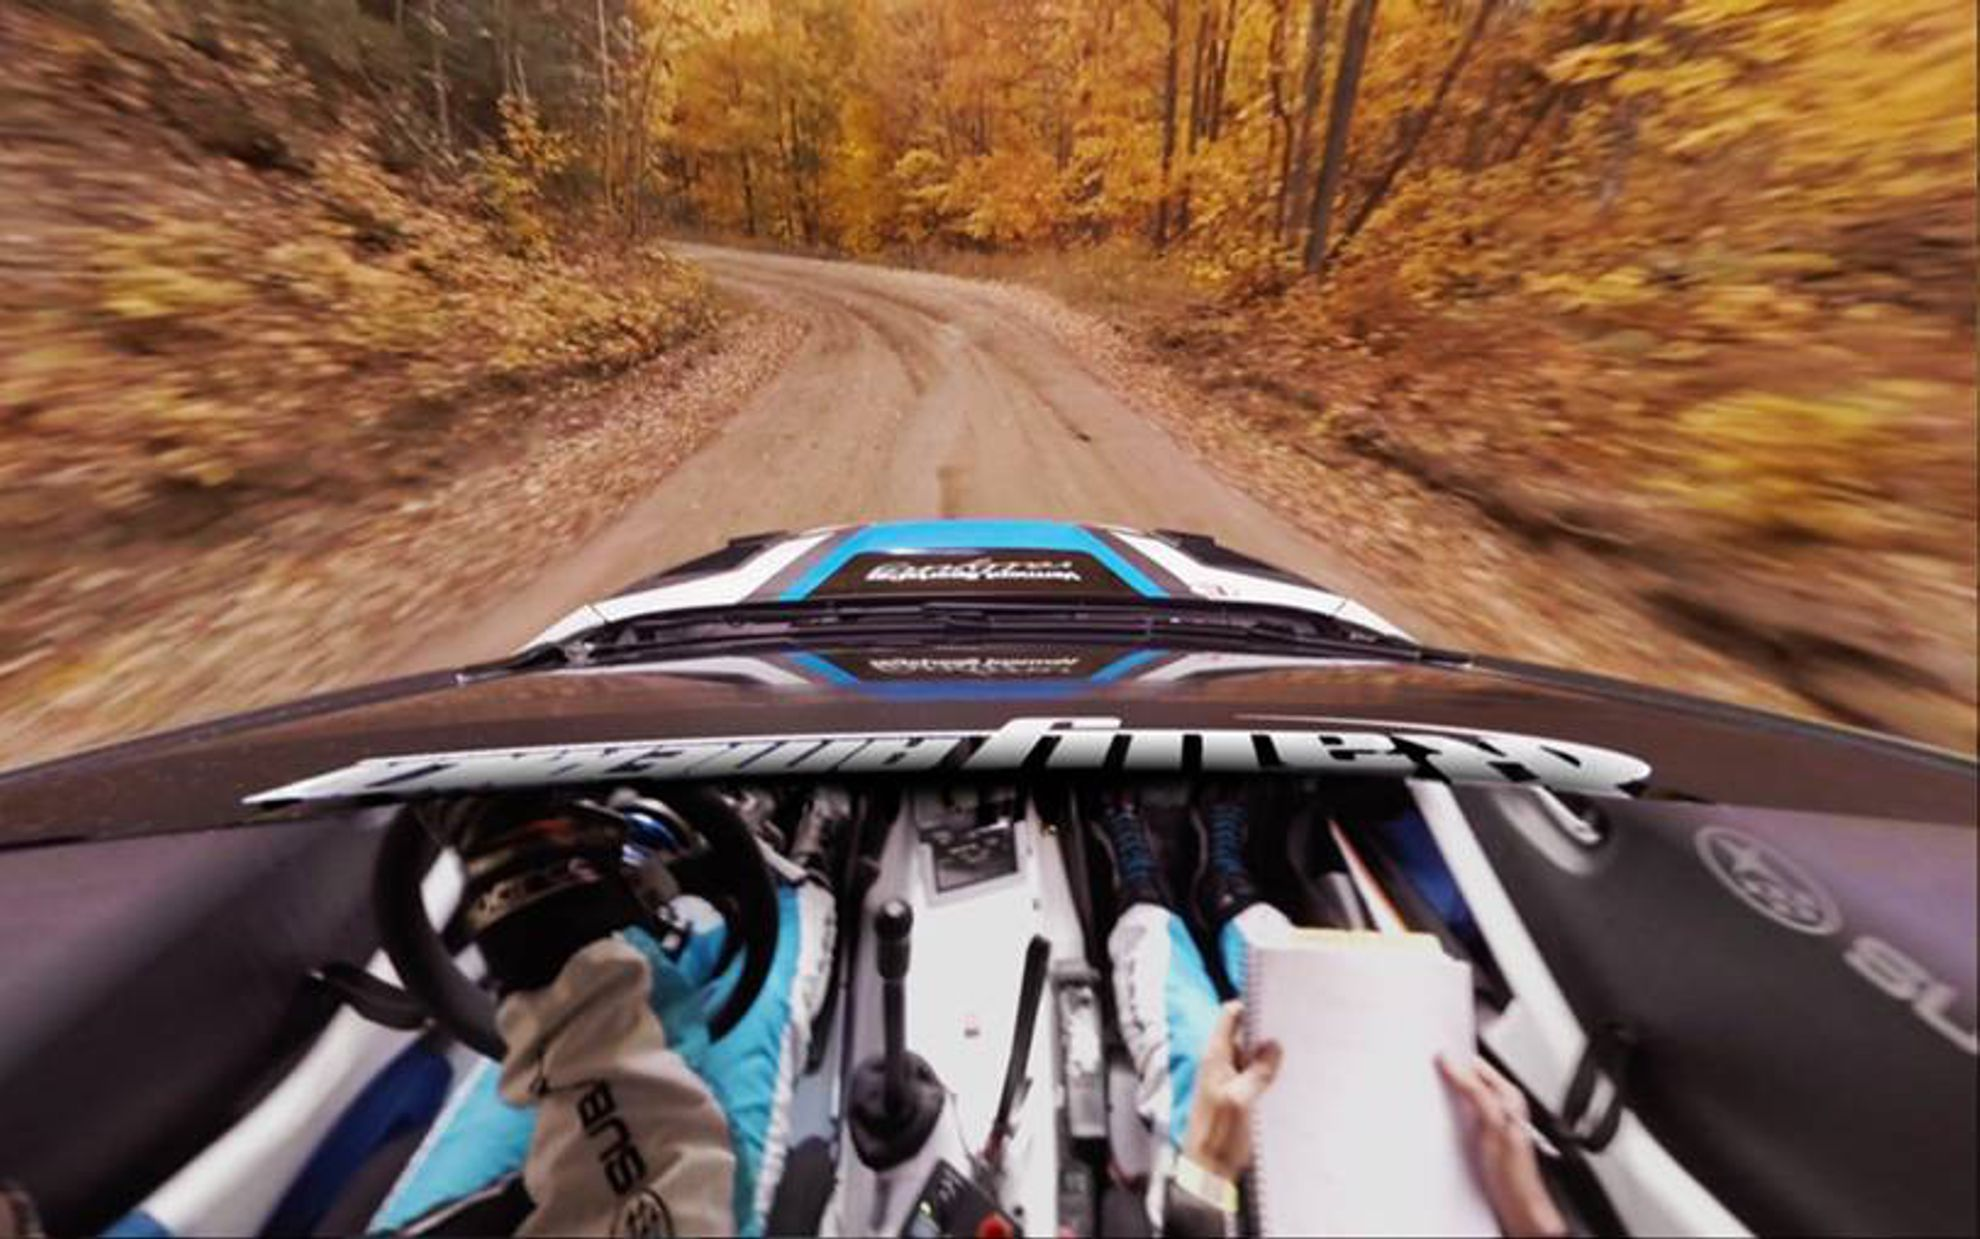 Subaru-360-virtual-reality-rally